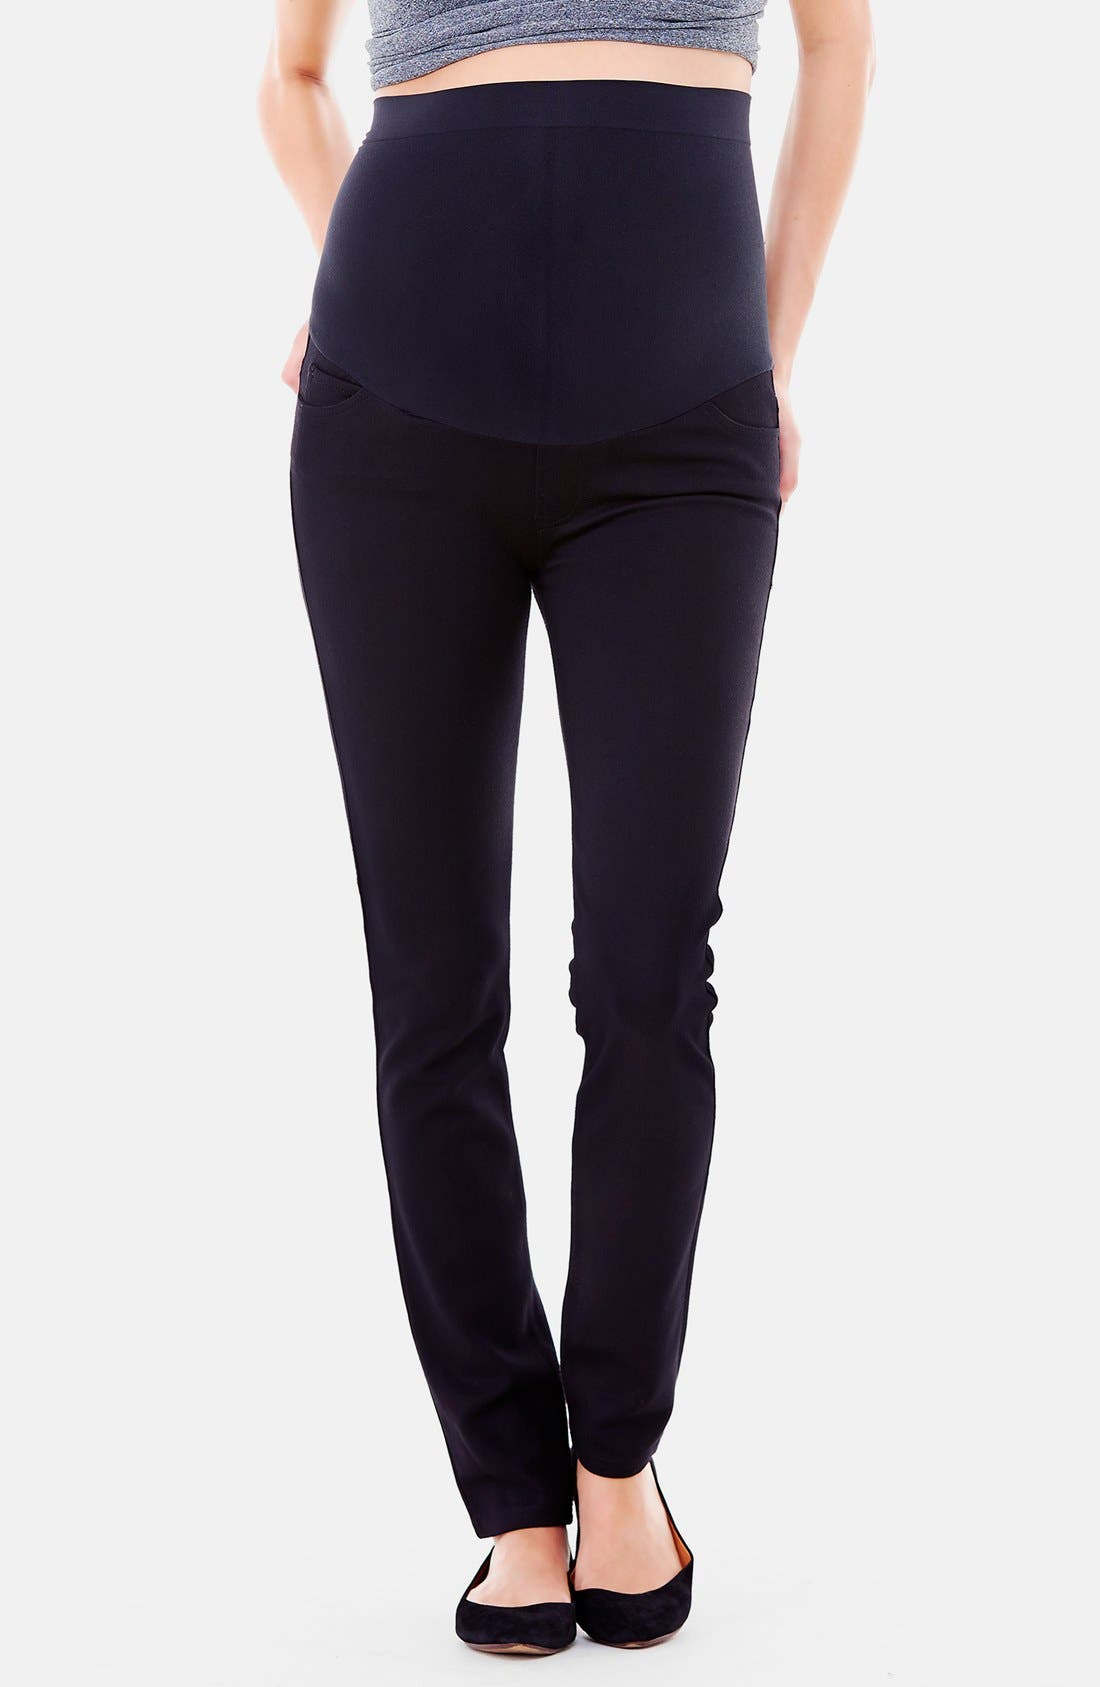 Alternate Image 1 Selected - Ingrid & Isabel® Ponte Knit Skinny Maternity Pants